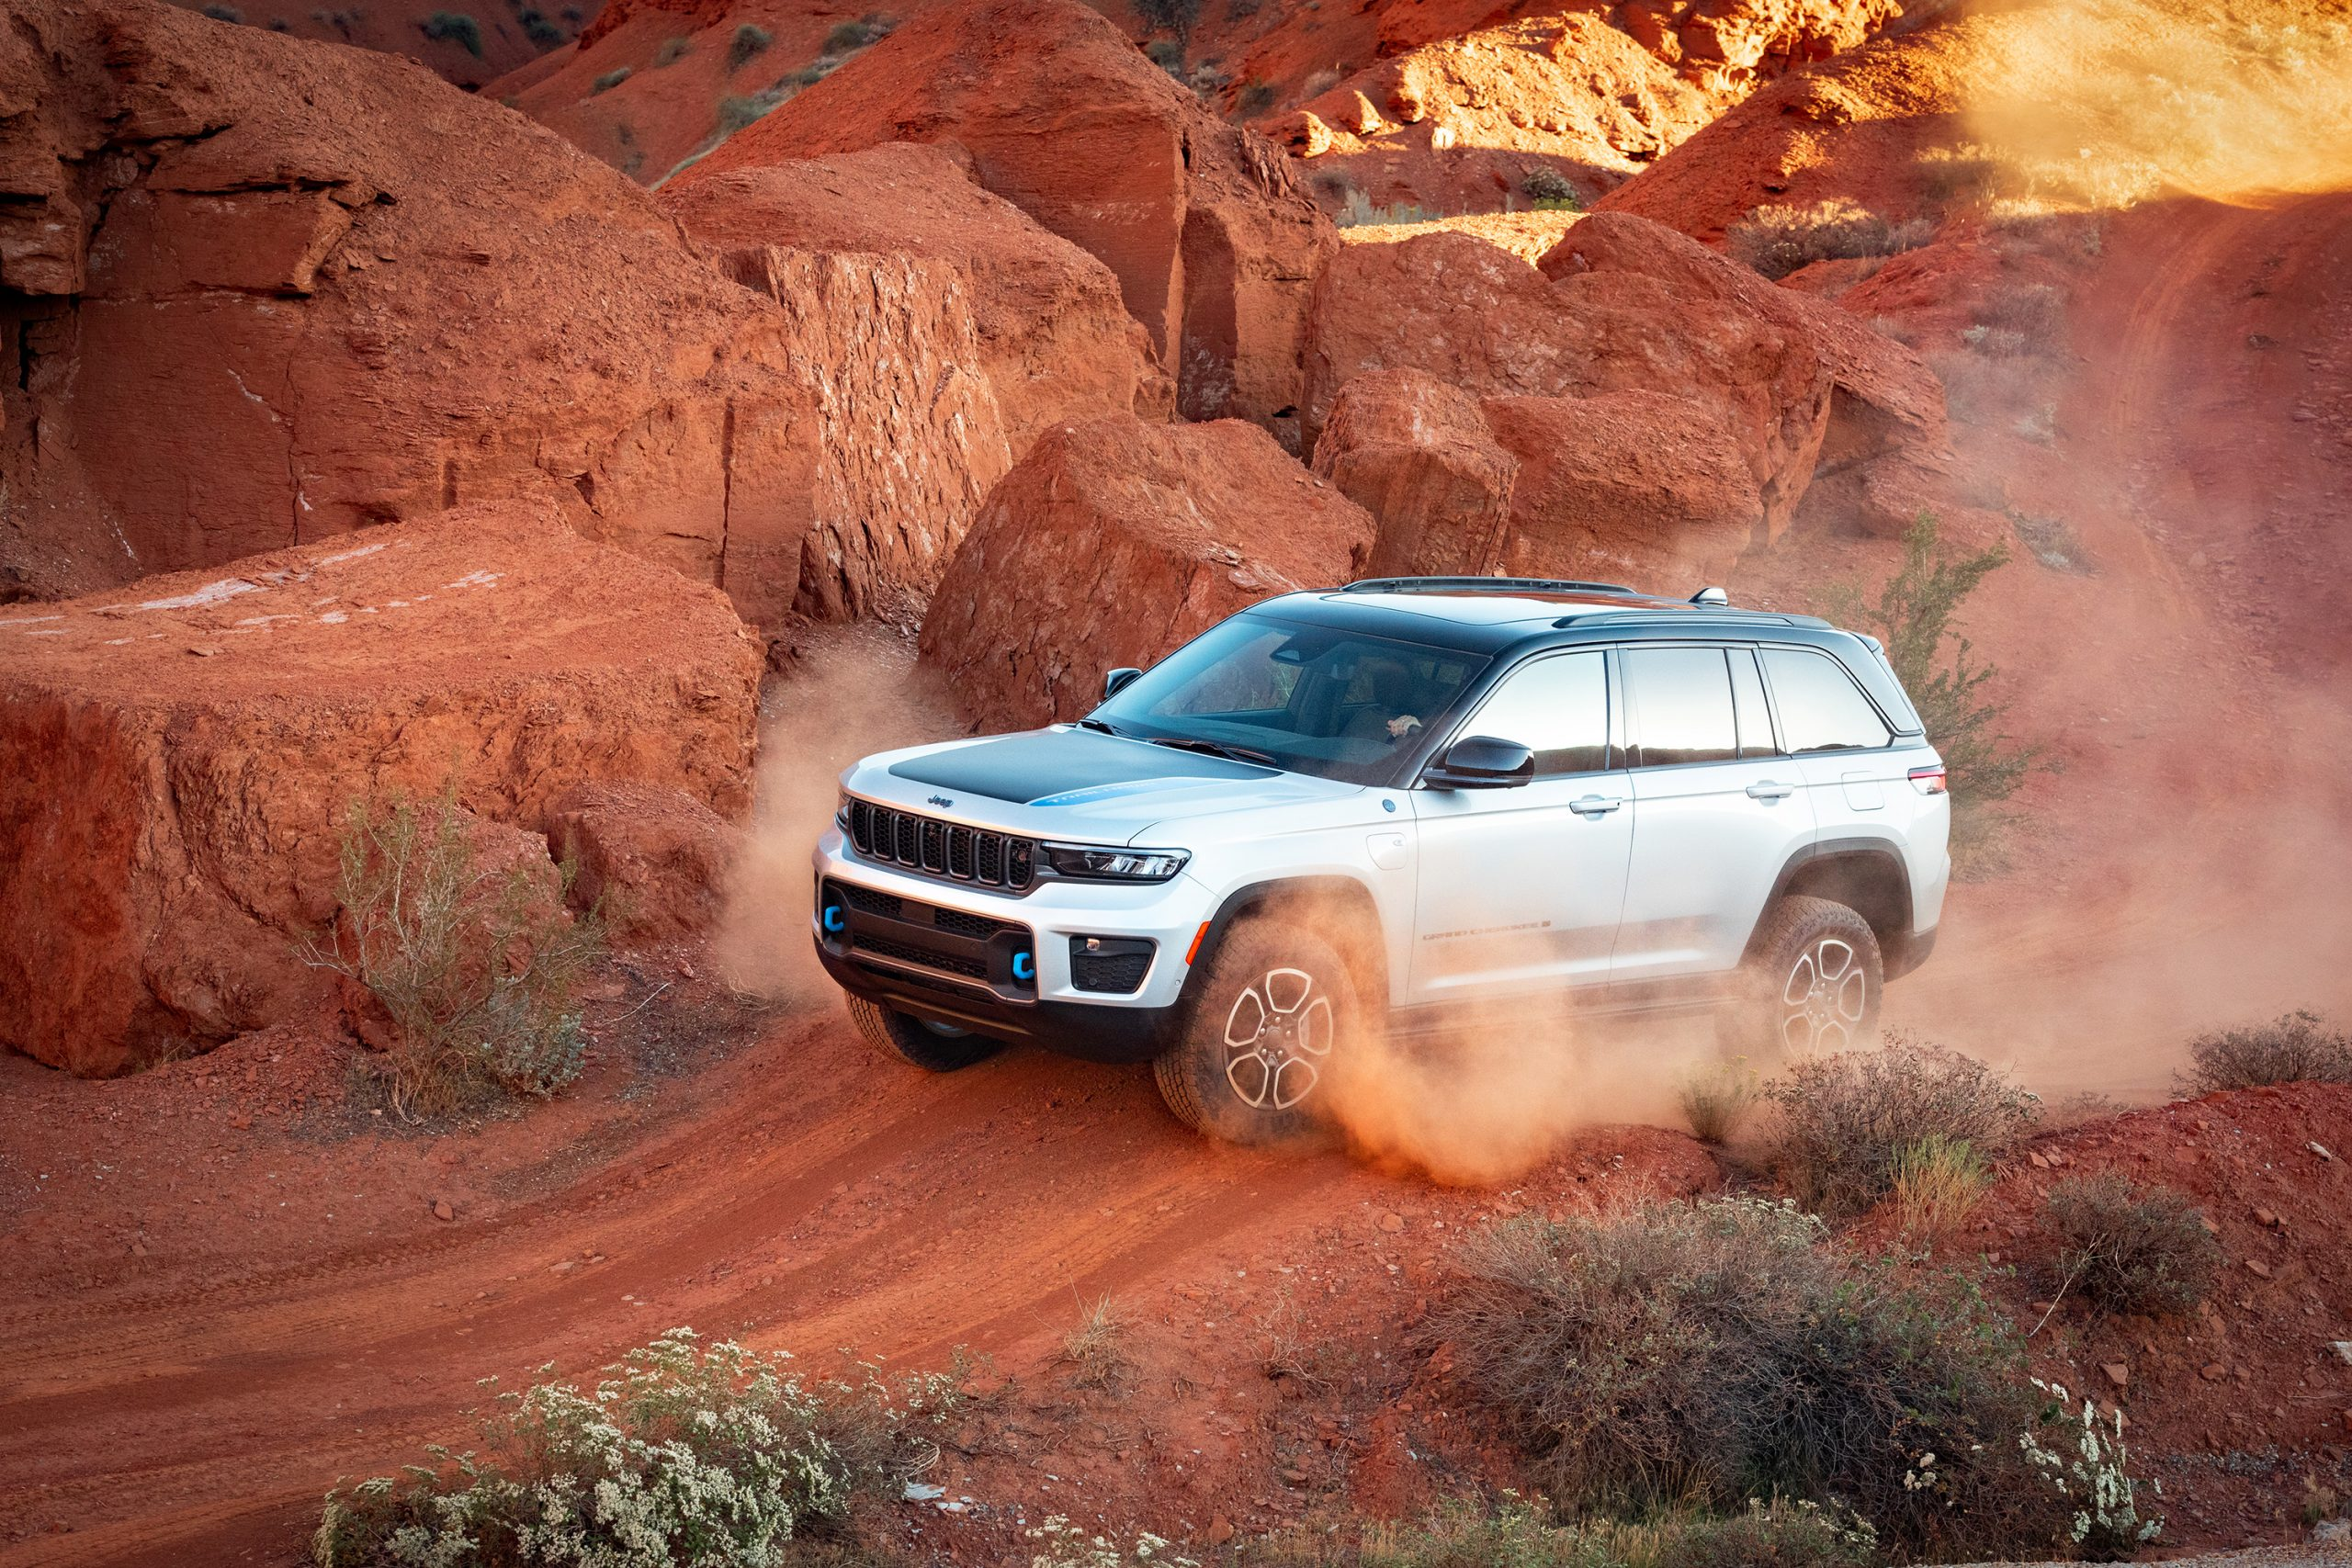 2022 Jeep Grand Cherokee Trailhawk 4xe side profile over jump